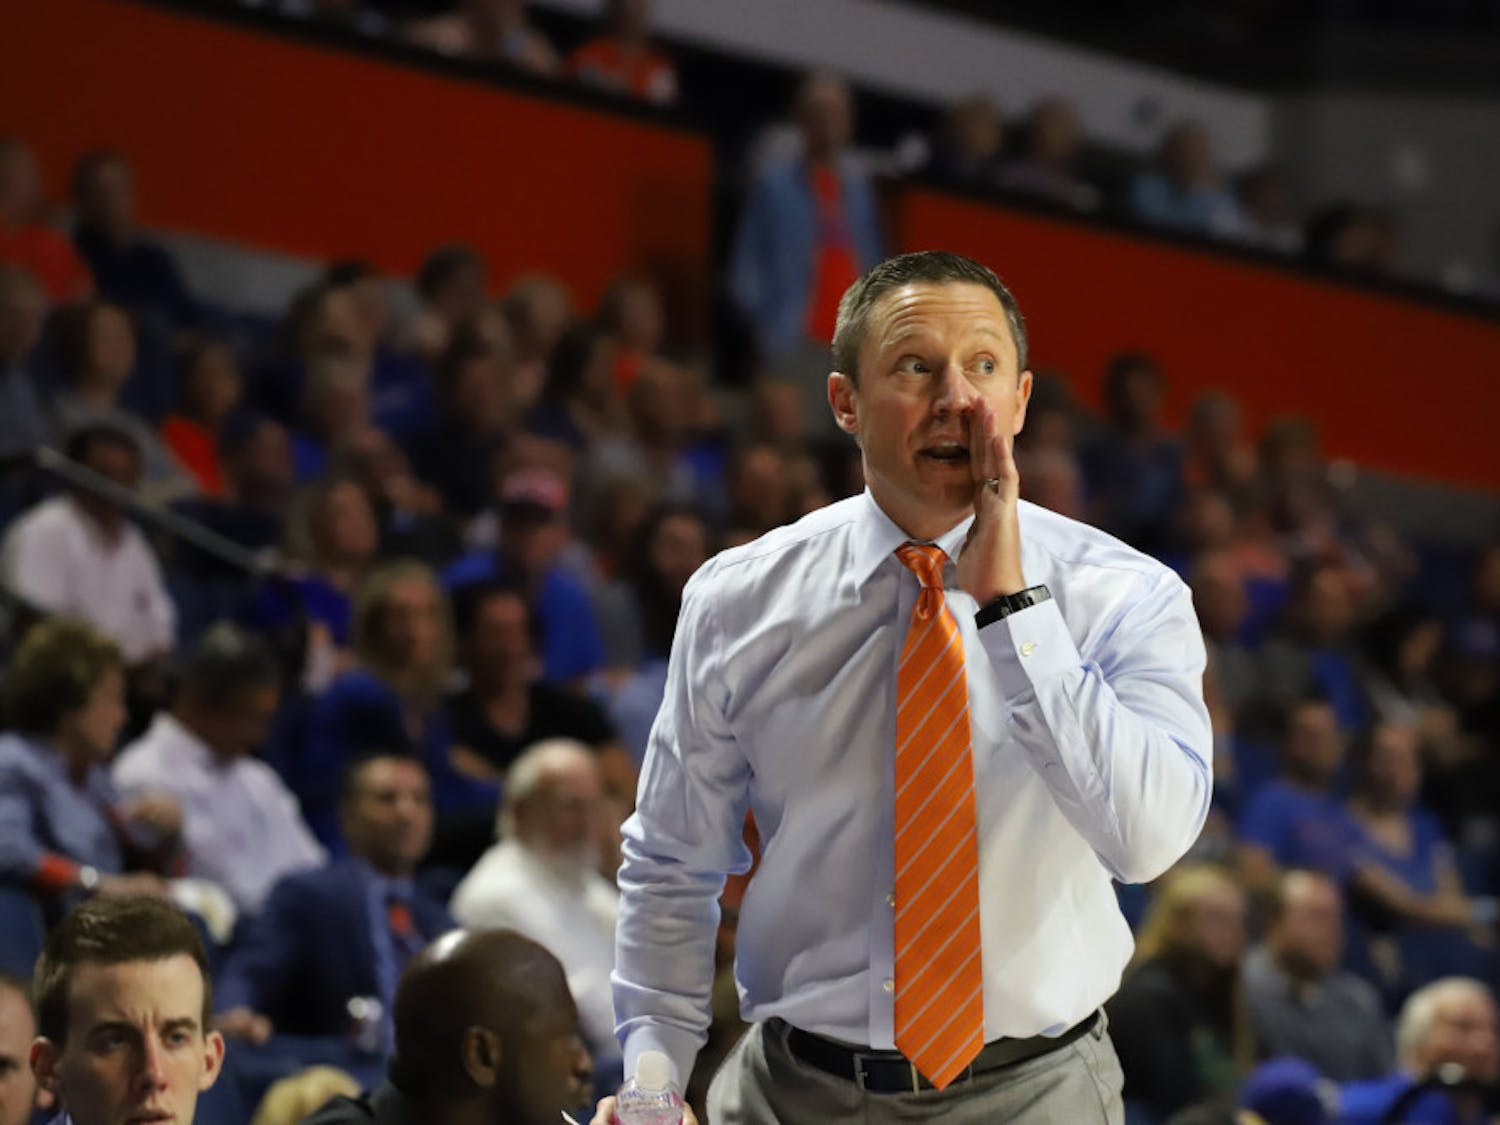 Coach Mike White at Florida's game versus UNF last year. This season, the Gators will welcome Stetson to the O'Connell Center for their 63rd meeting on the court.